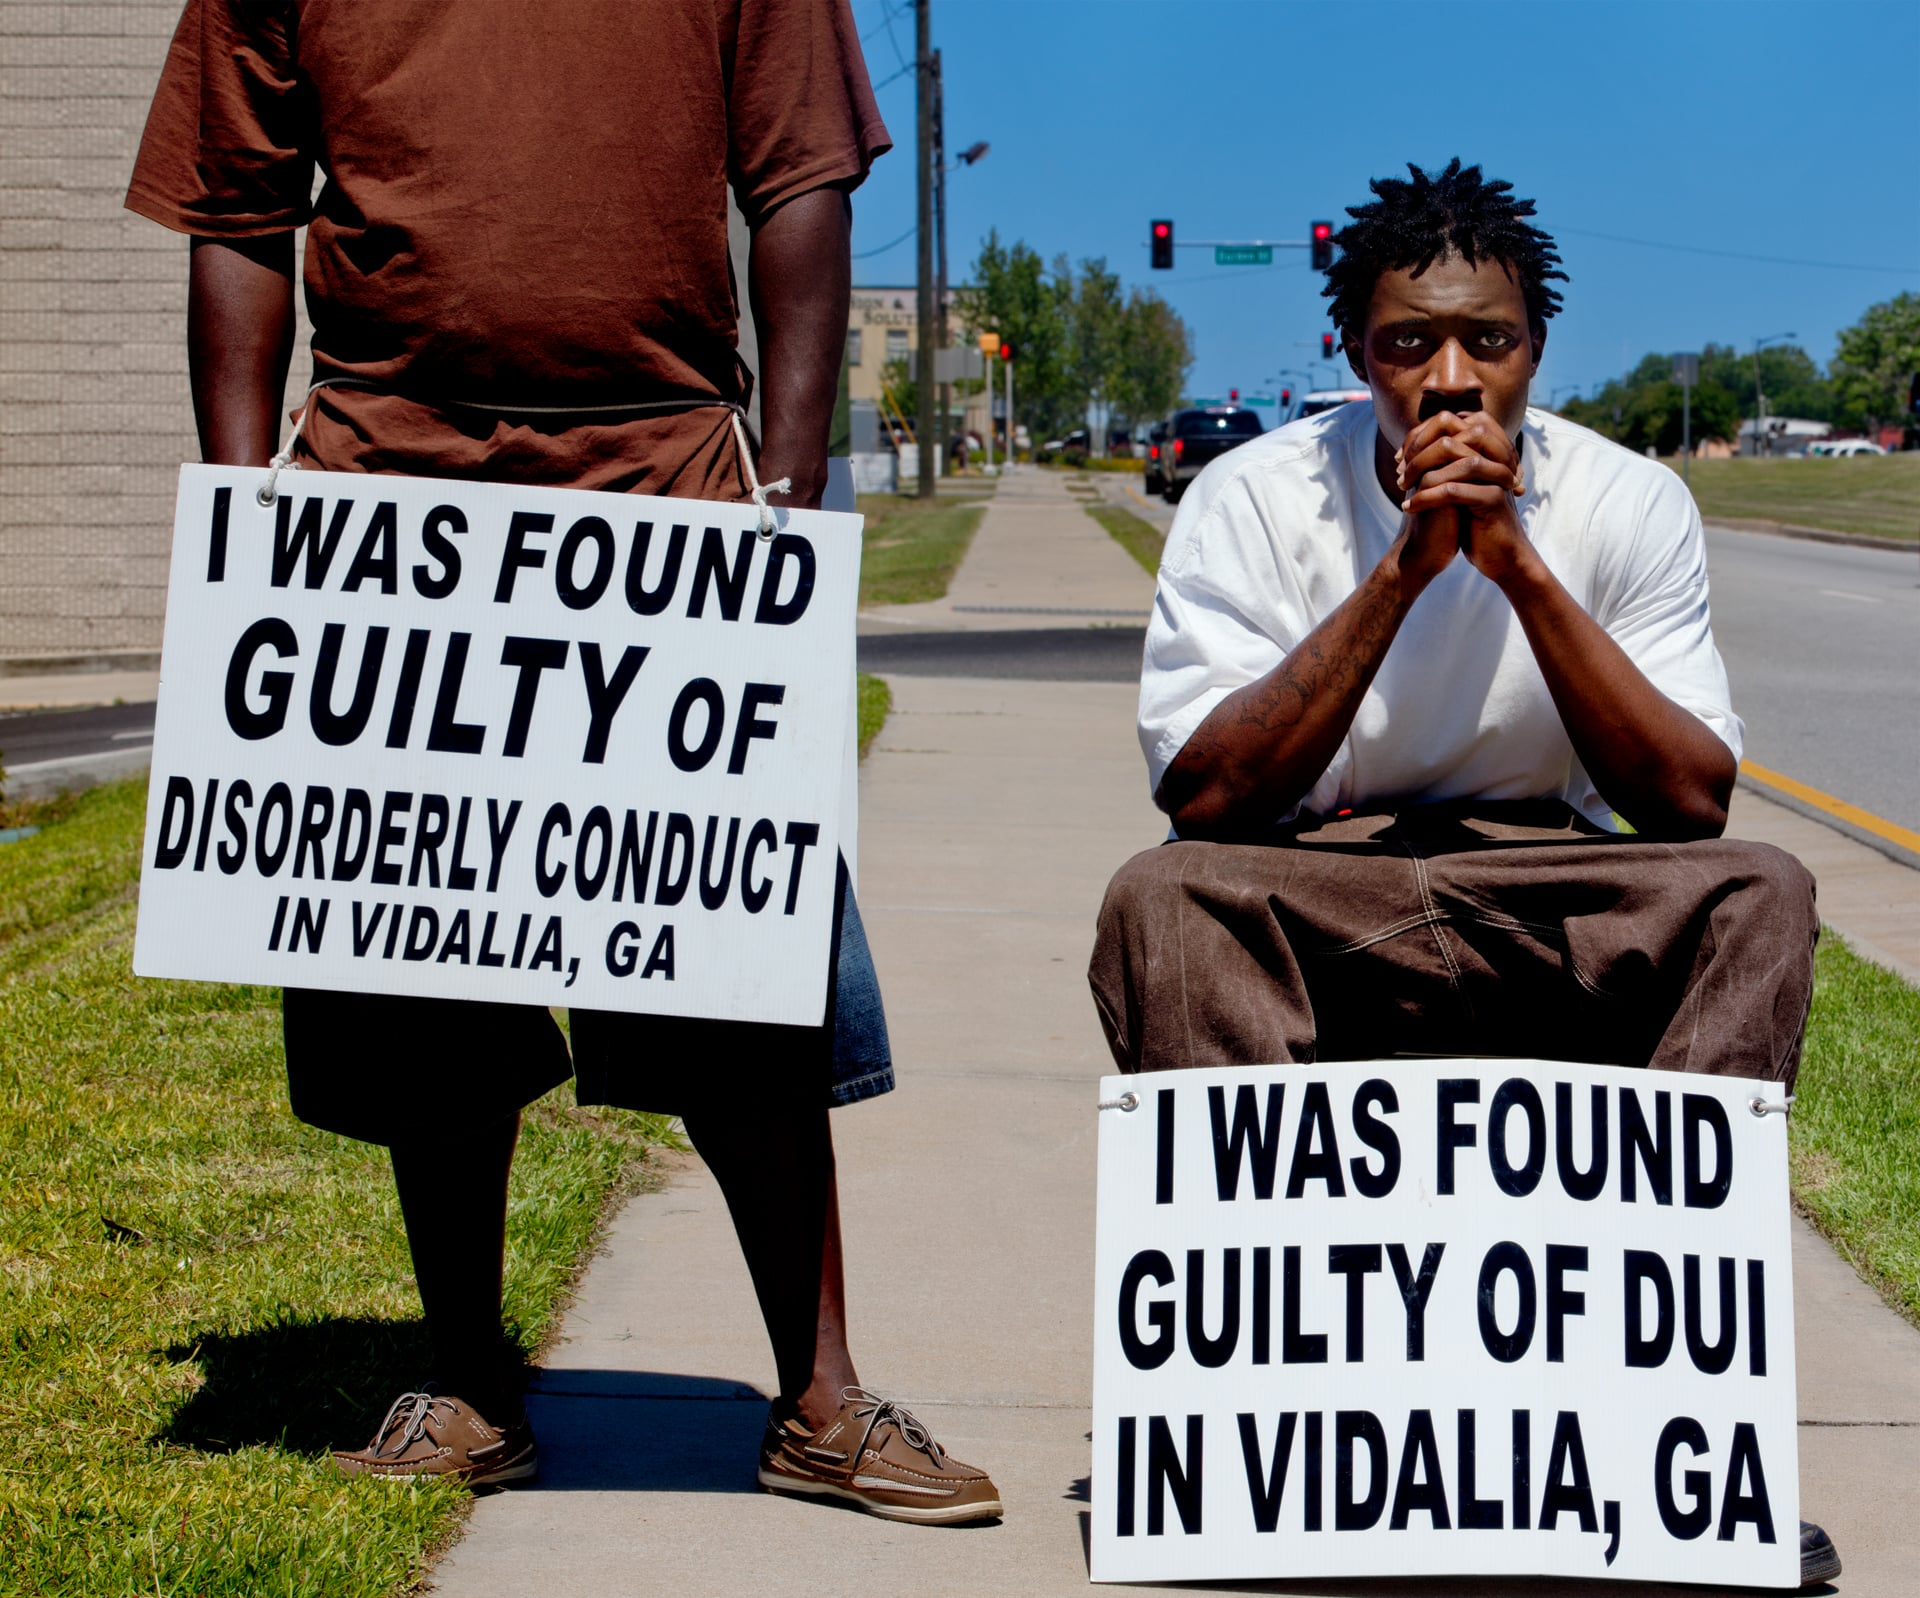 VIDALIA, GEORGIA – MAY 2013: Public shaming on May 24, 2013 in